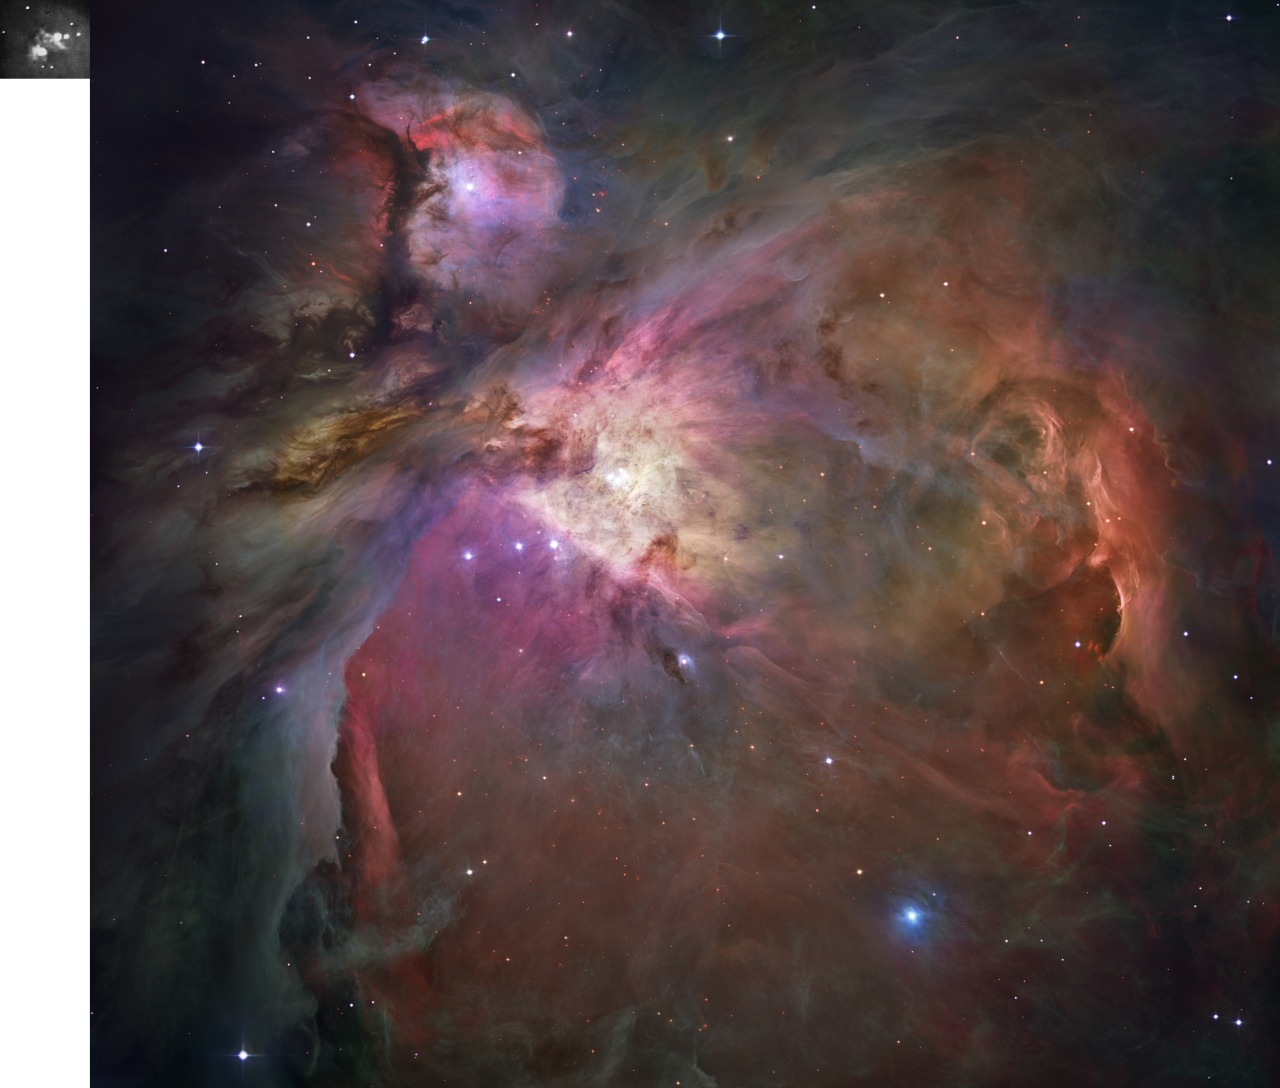 fromquarkstoquasars:  First Ever Image of Orion (left) & Most Advanced Image Ever (right):Want to see how much technology has advanced in 100 years?Look no further…We recently posted an image of the Orion nebula across all our social media sites. This image compared the first ever photograph of Orion (taken in 1880) with an image taken in 2013 on an iPhone.Most people seemed to enjoy the comparison. However, there was a bit of a kerfuffle. Some people asserted that, to be accurate and fair, we should compare the most detailed image pf Orion with Draper's image from 1880. Your wish is our command…. First ever image of Orion by Henry Draper in 1880 (left) and most detailed image of Orion ever taken (right). Image compiled by From Quarks to QuasarsRead more about this story at:http://www.fromquarkstoquasars.com/?p=28189